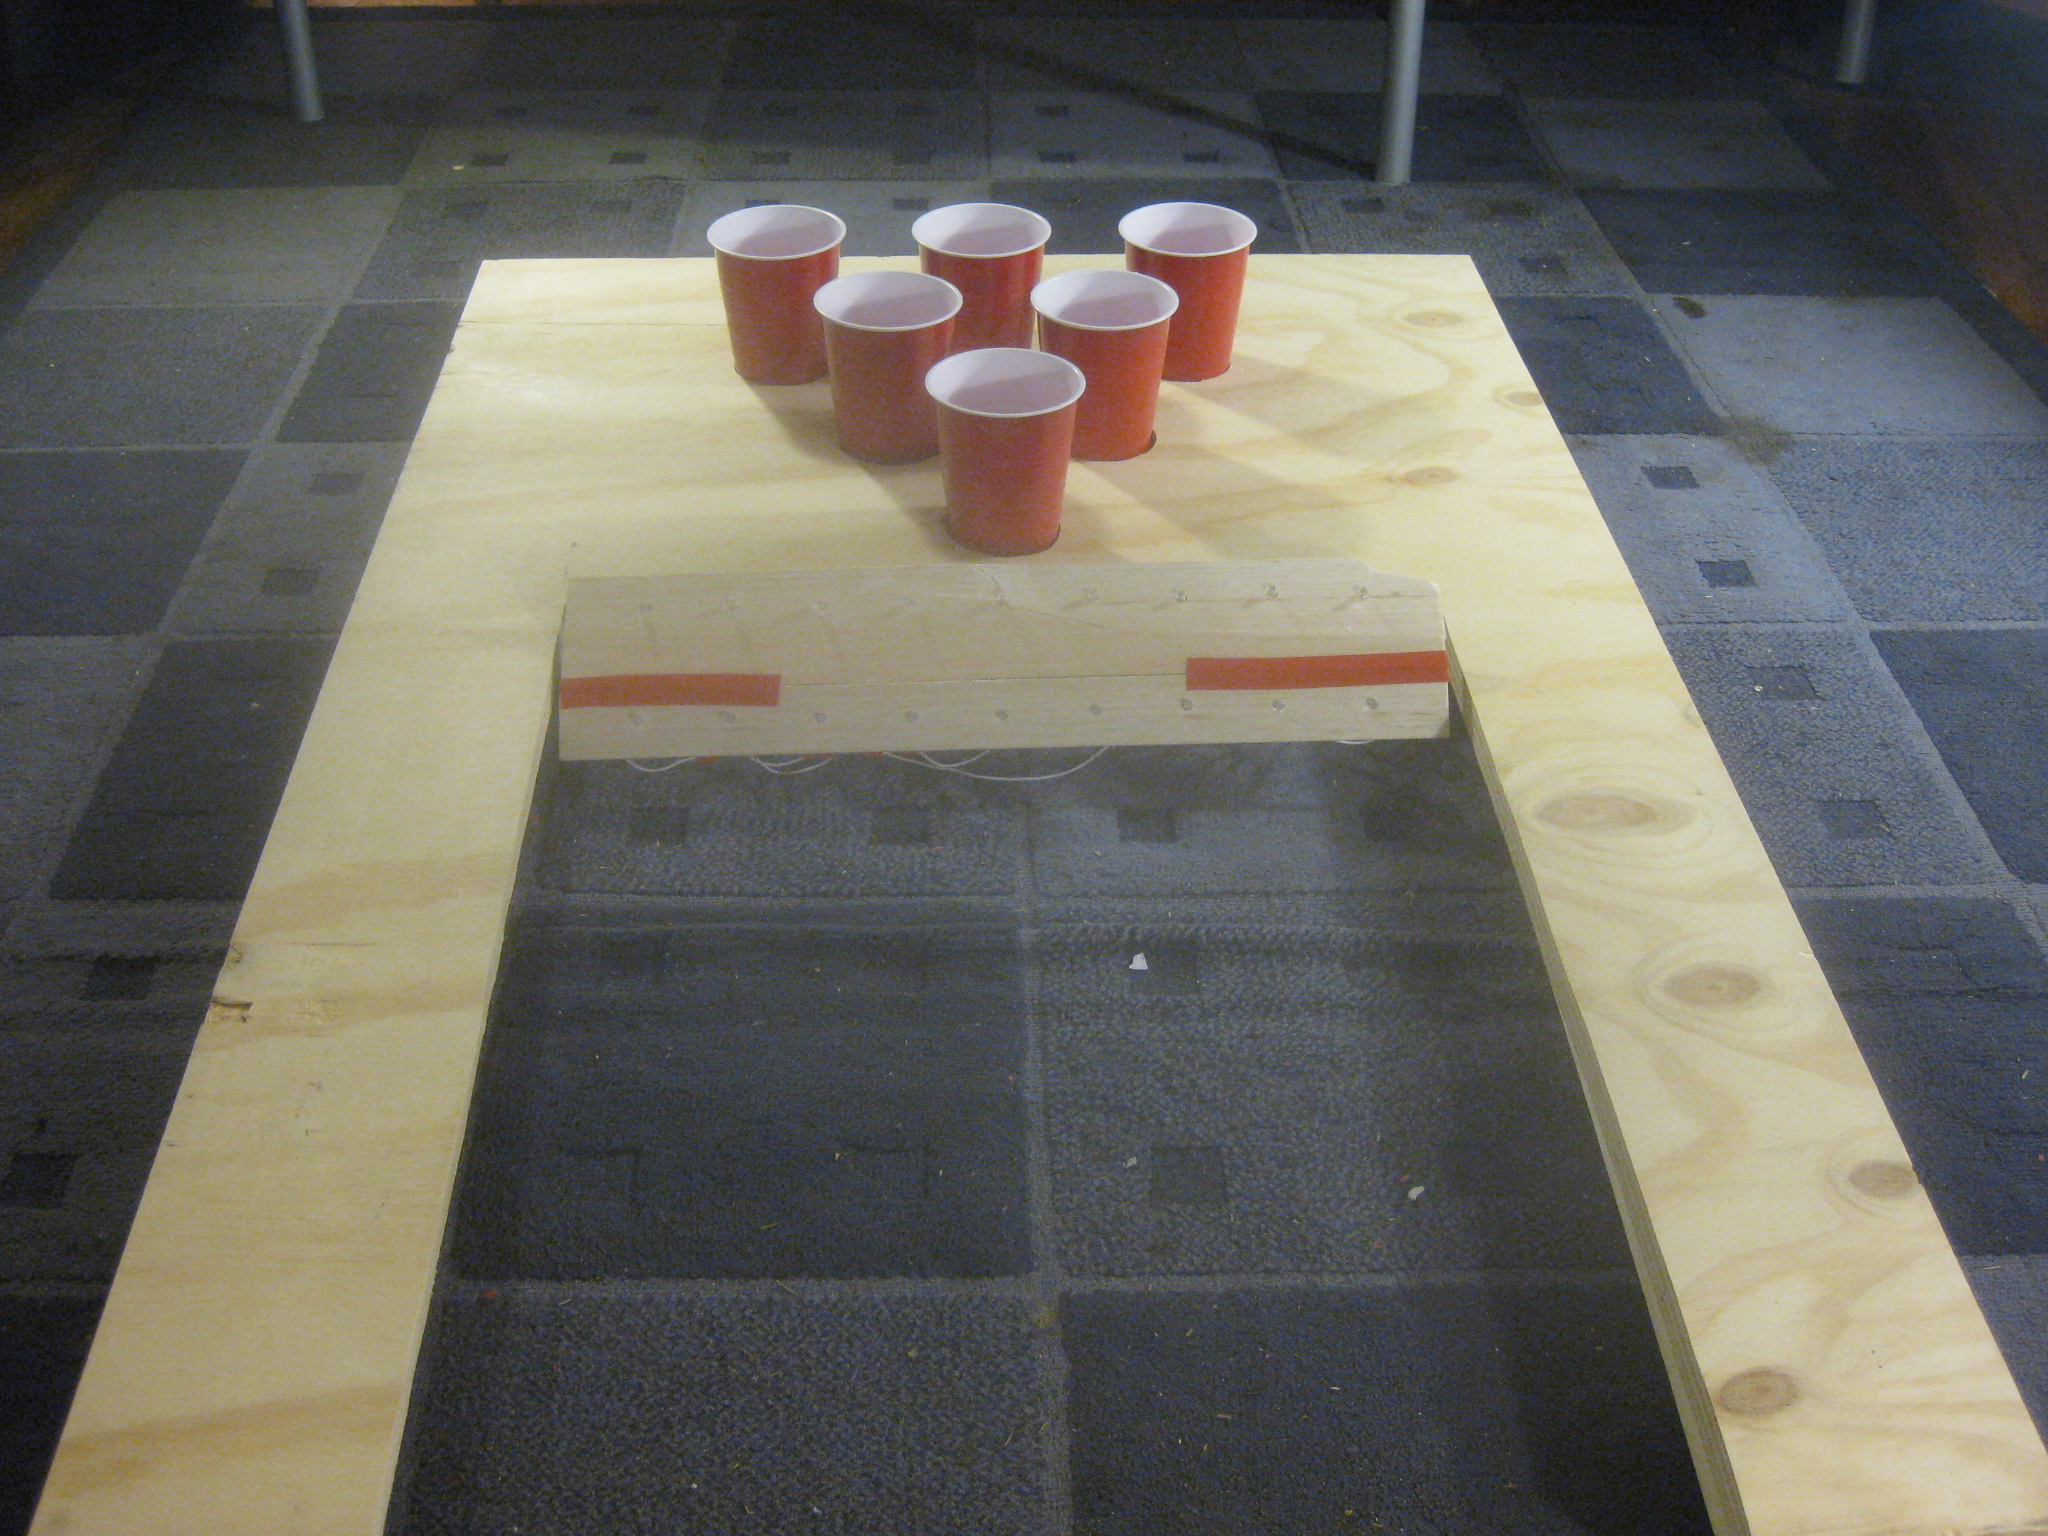 Interactive Beer Pong (Beirut) Table